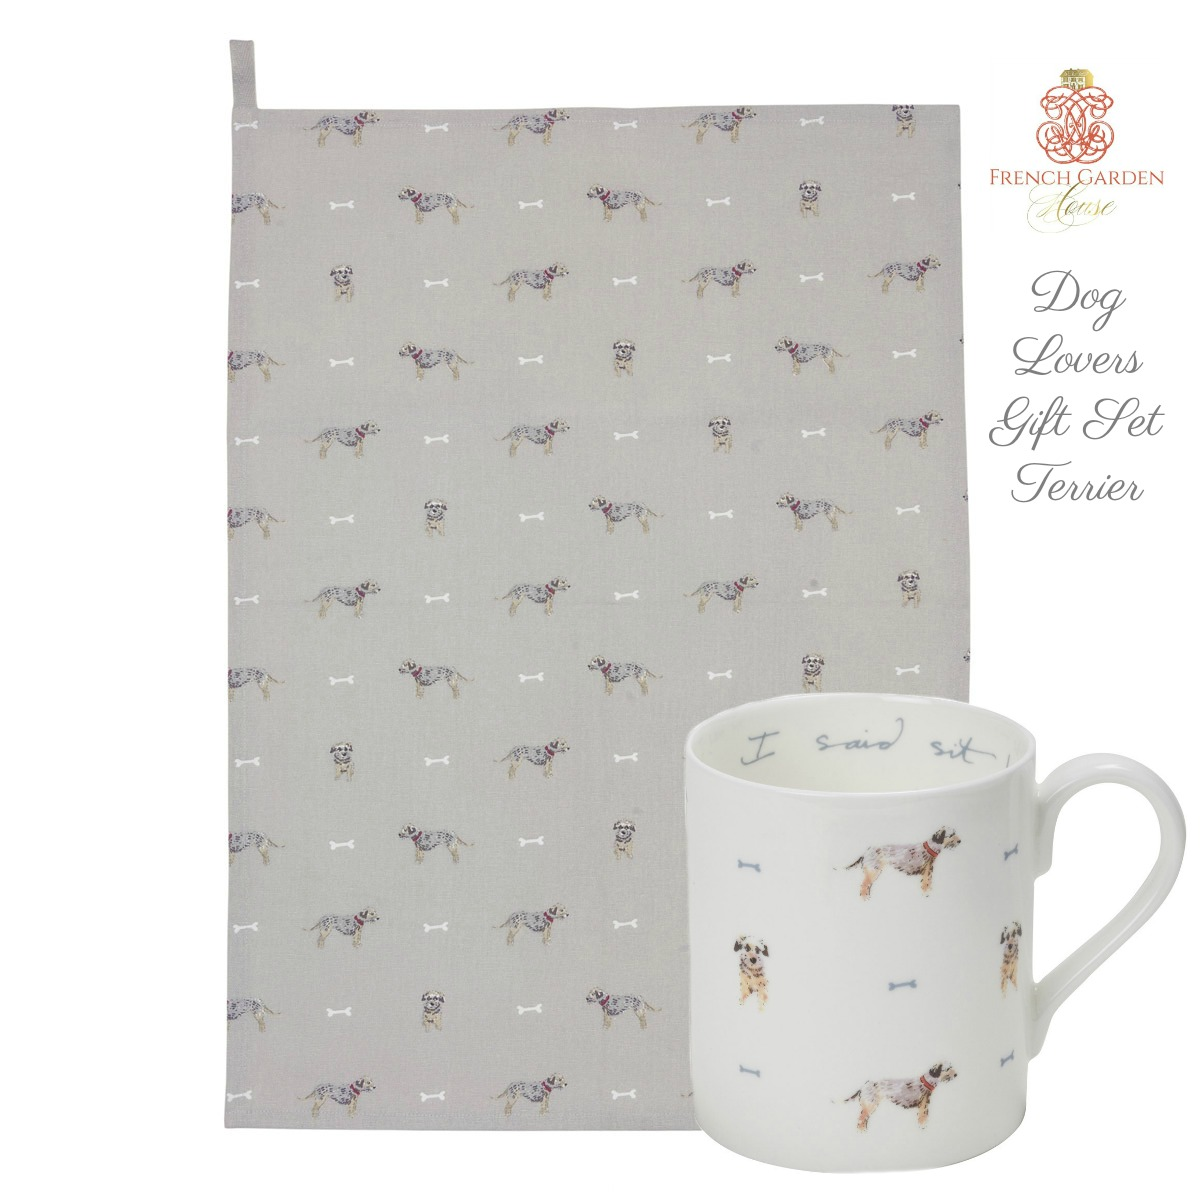 Dog Lovers Gift Set Terrier